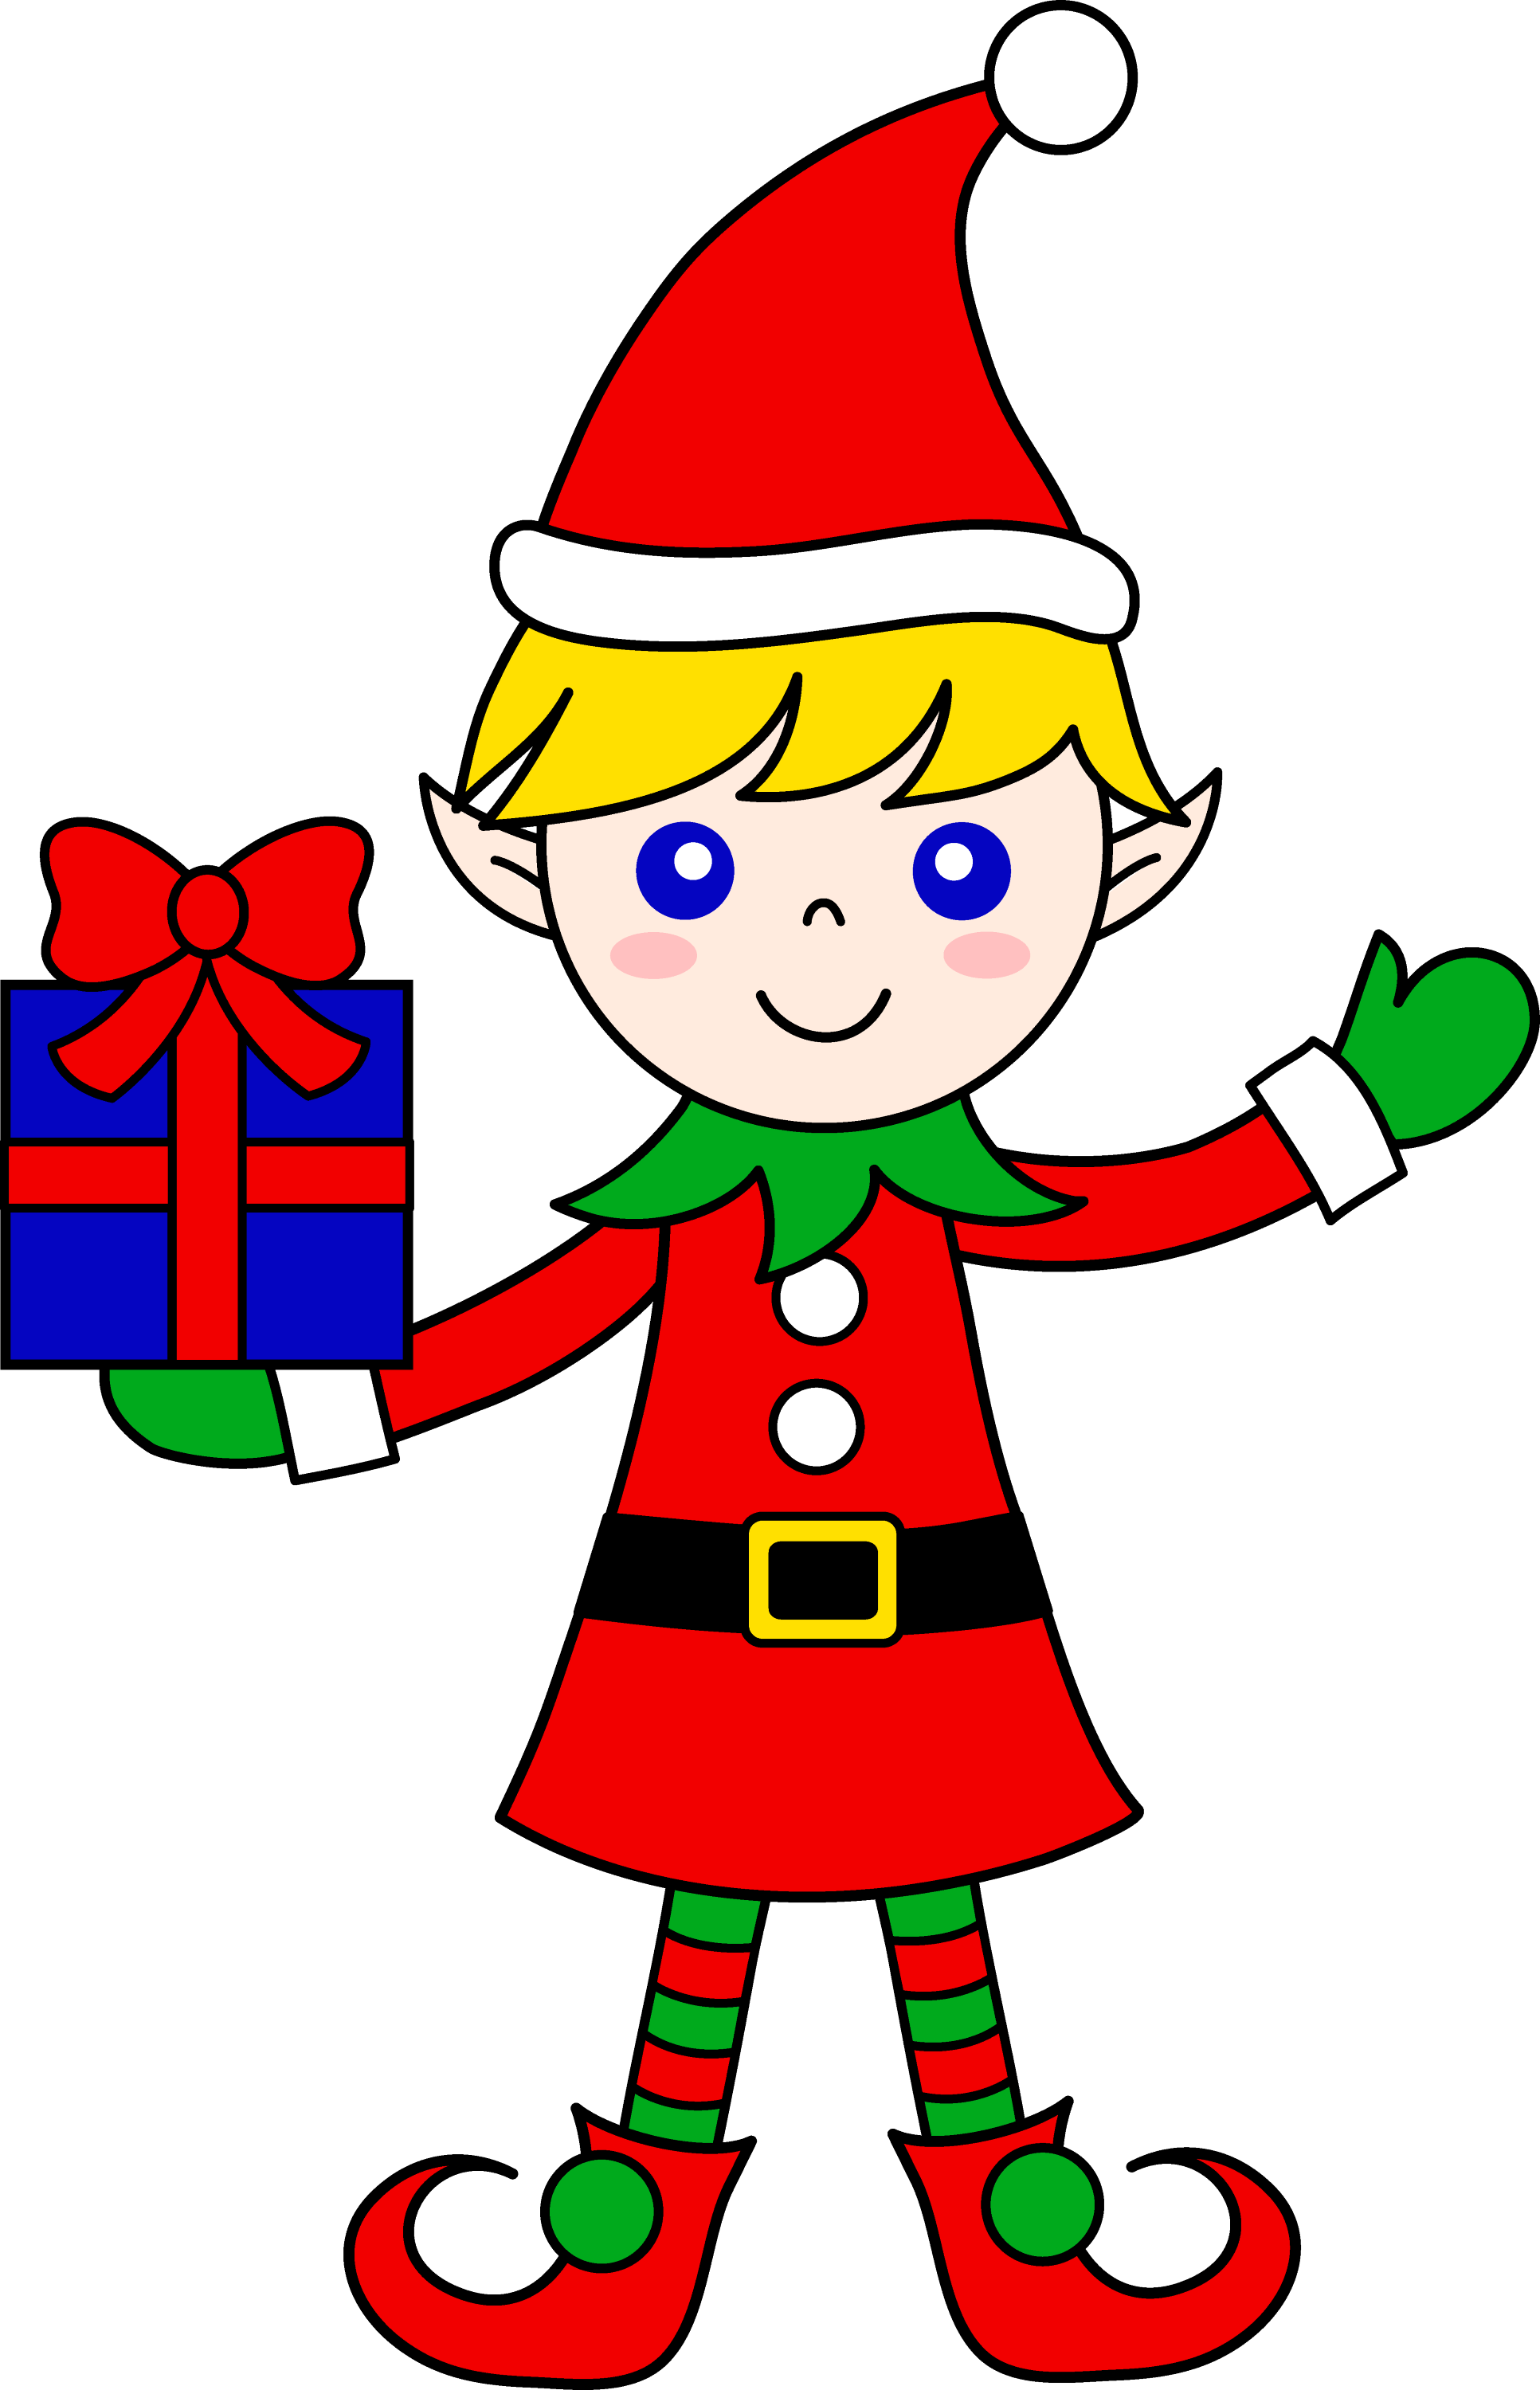 cute christmas elf with gift free clip art rh sweetclipart com elf hat clipart free elf hat clipart free